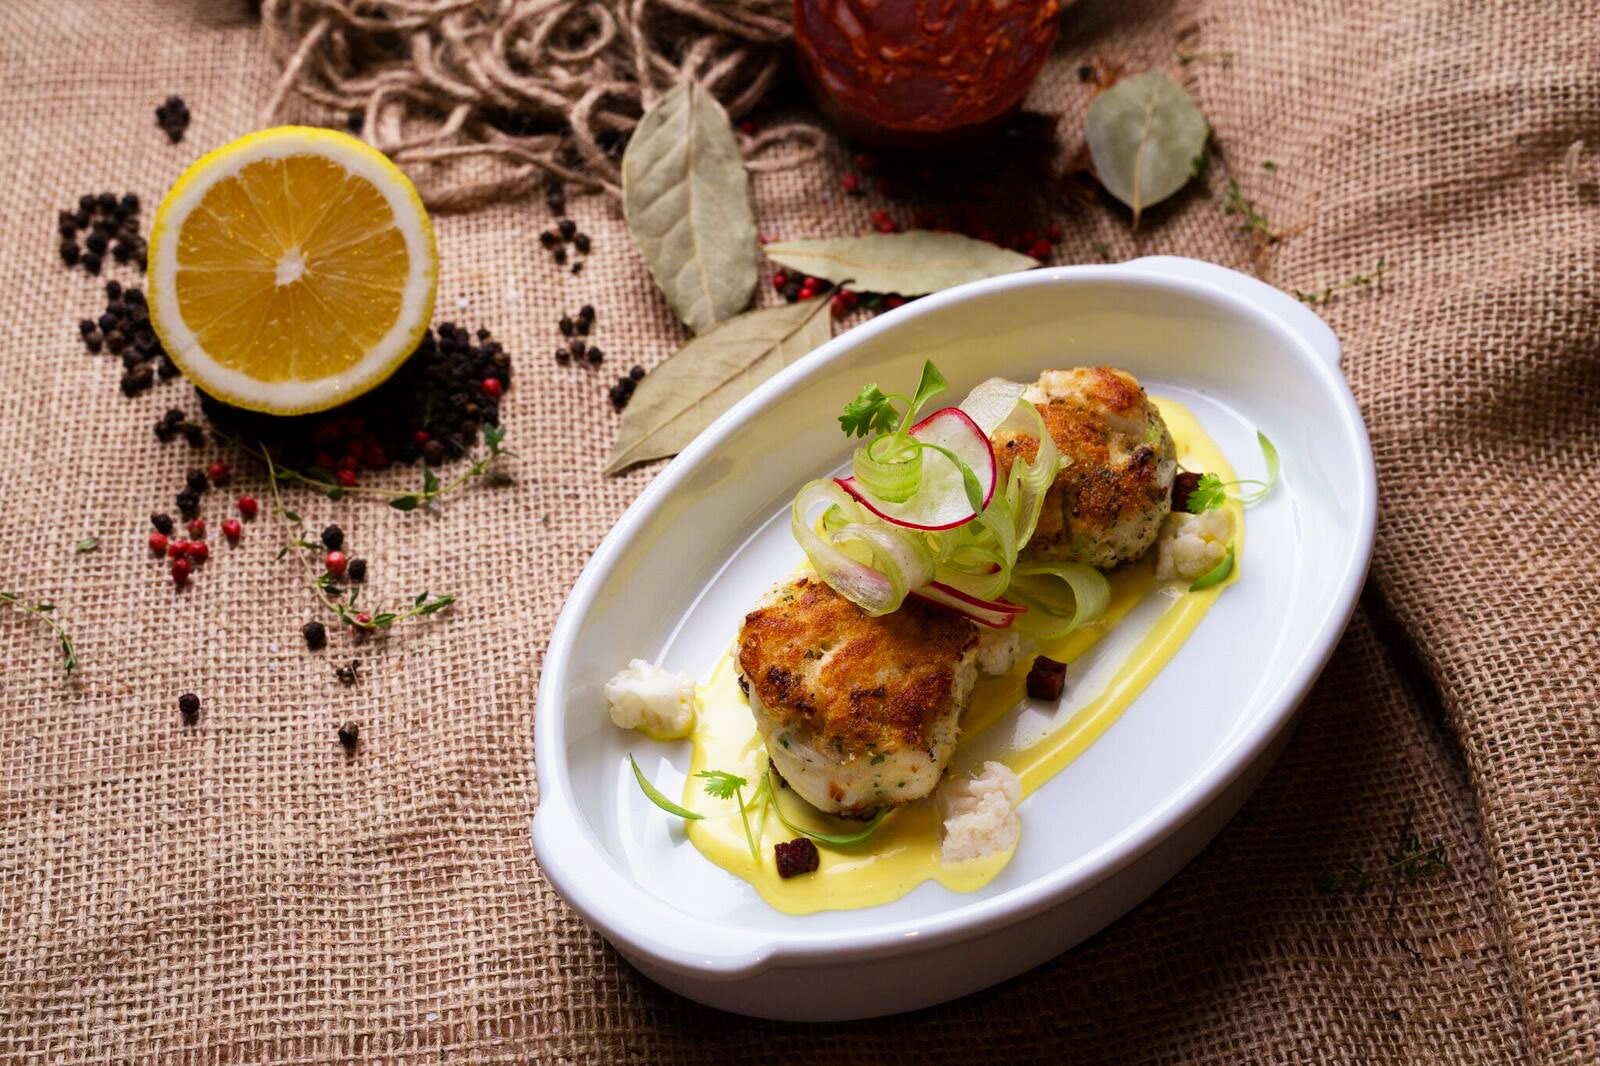 Crab Cakes With A Mediterranean Twist